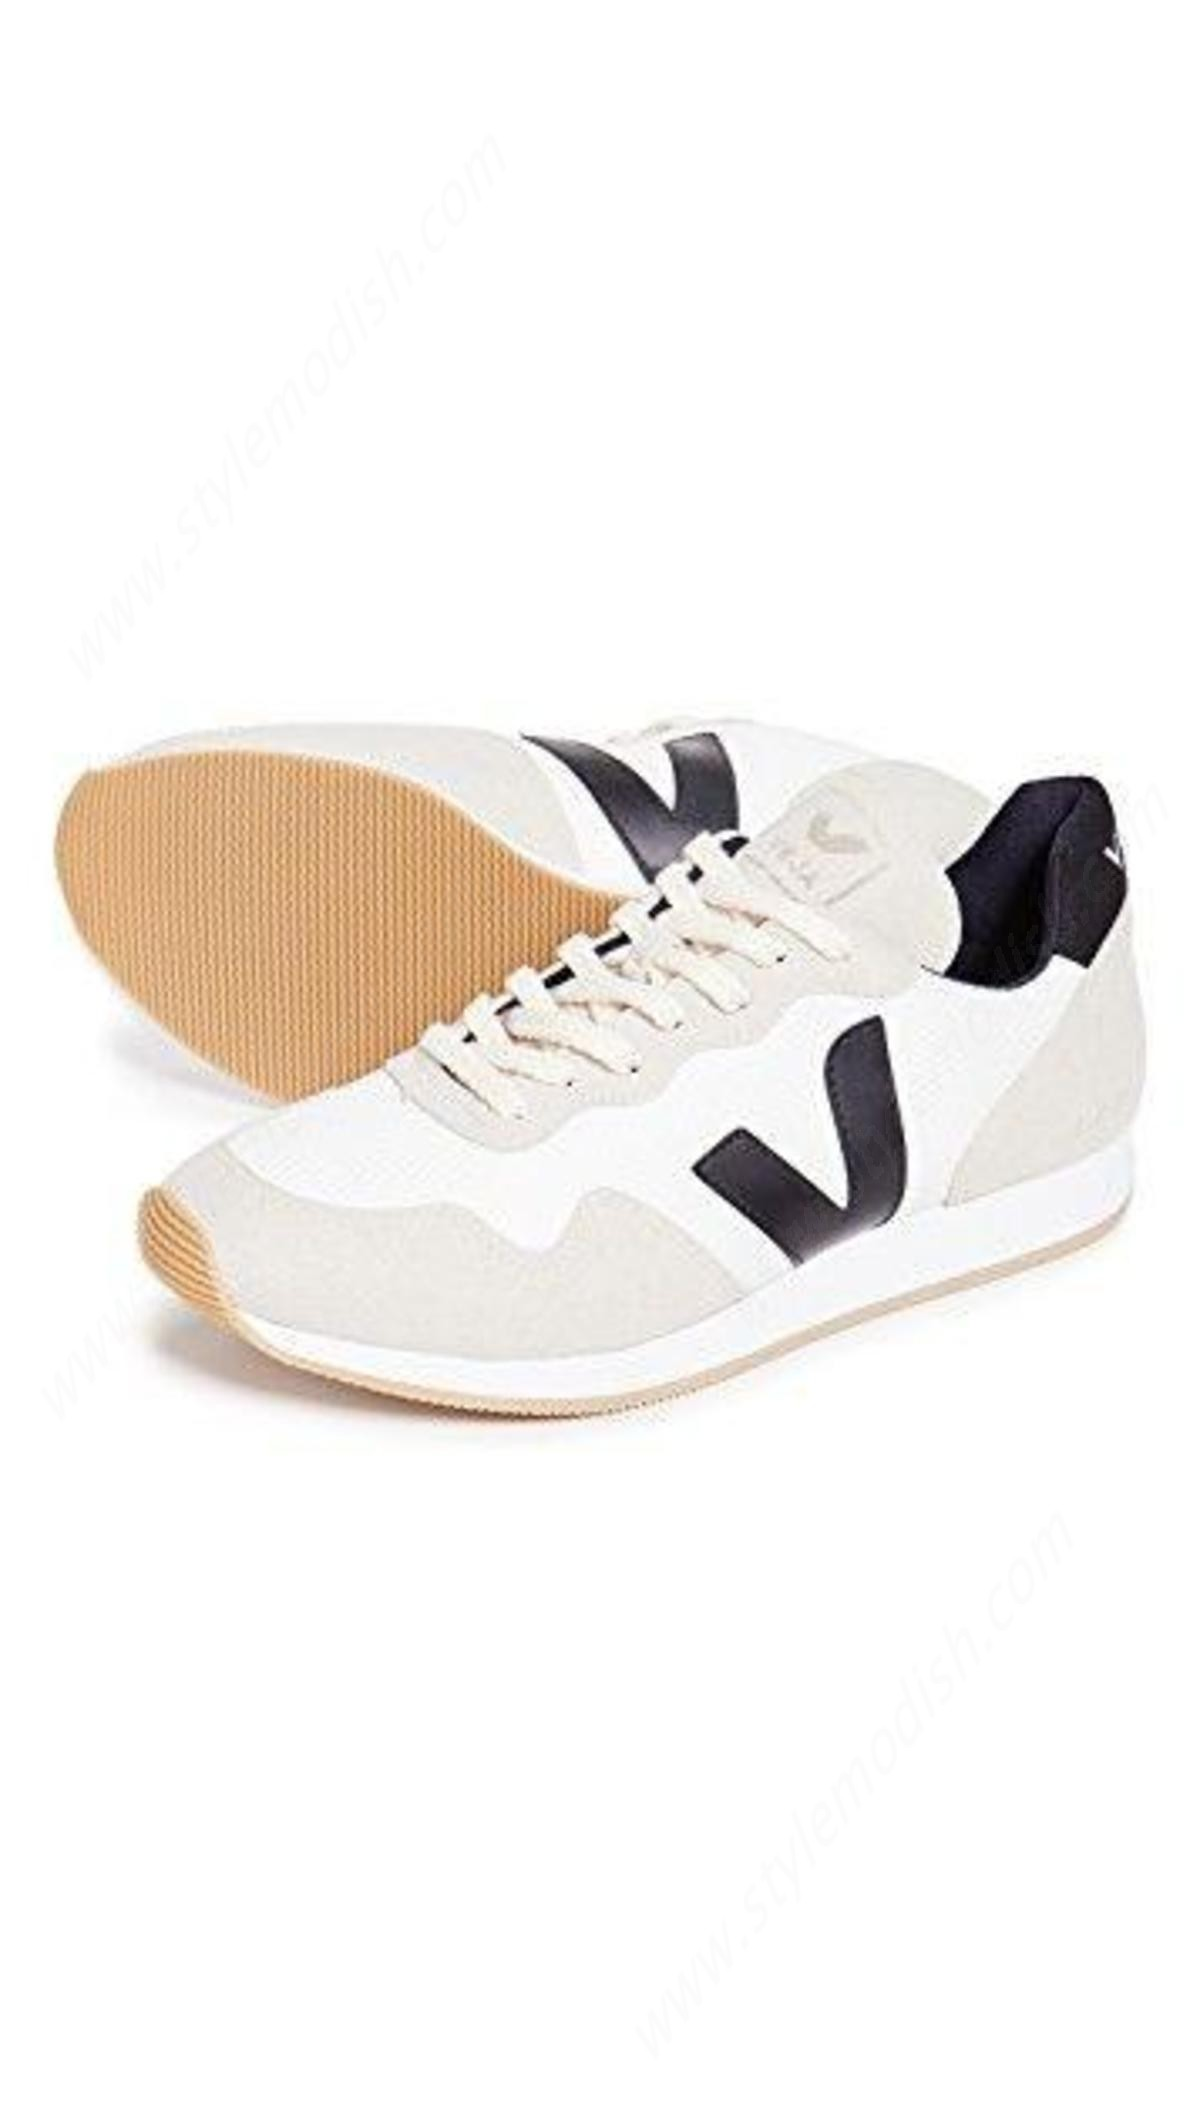 Womens's Veja Santos Dumont Natural Mesh Trainers - Grey/white - -3